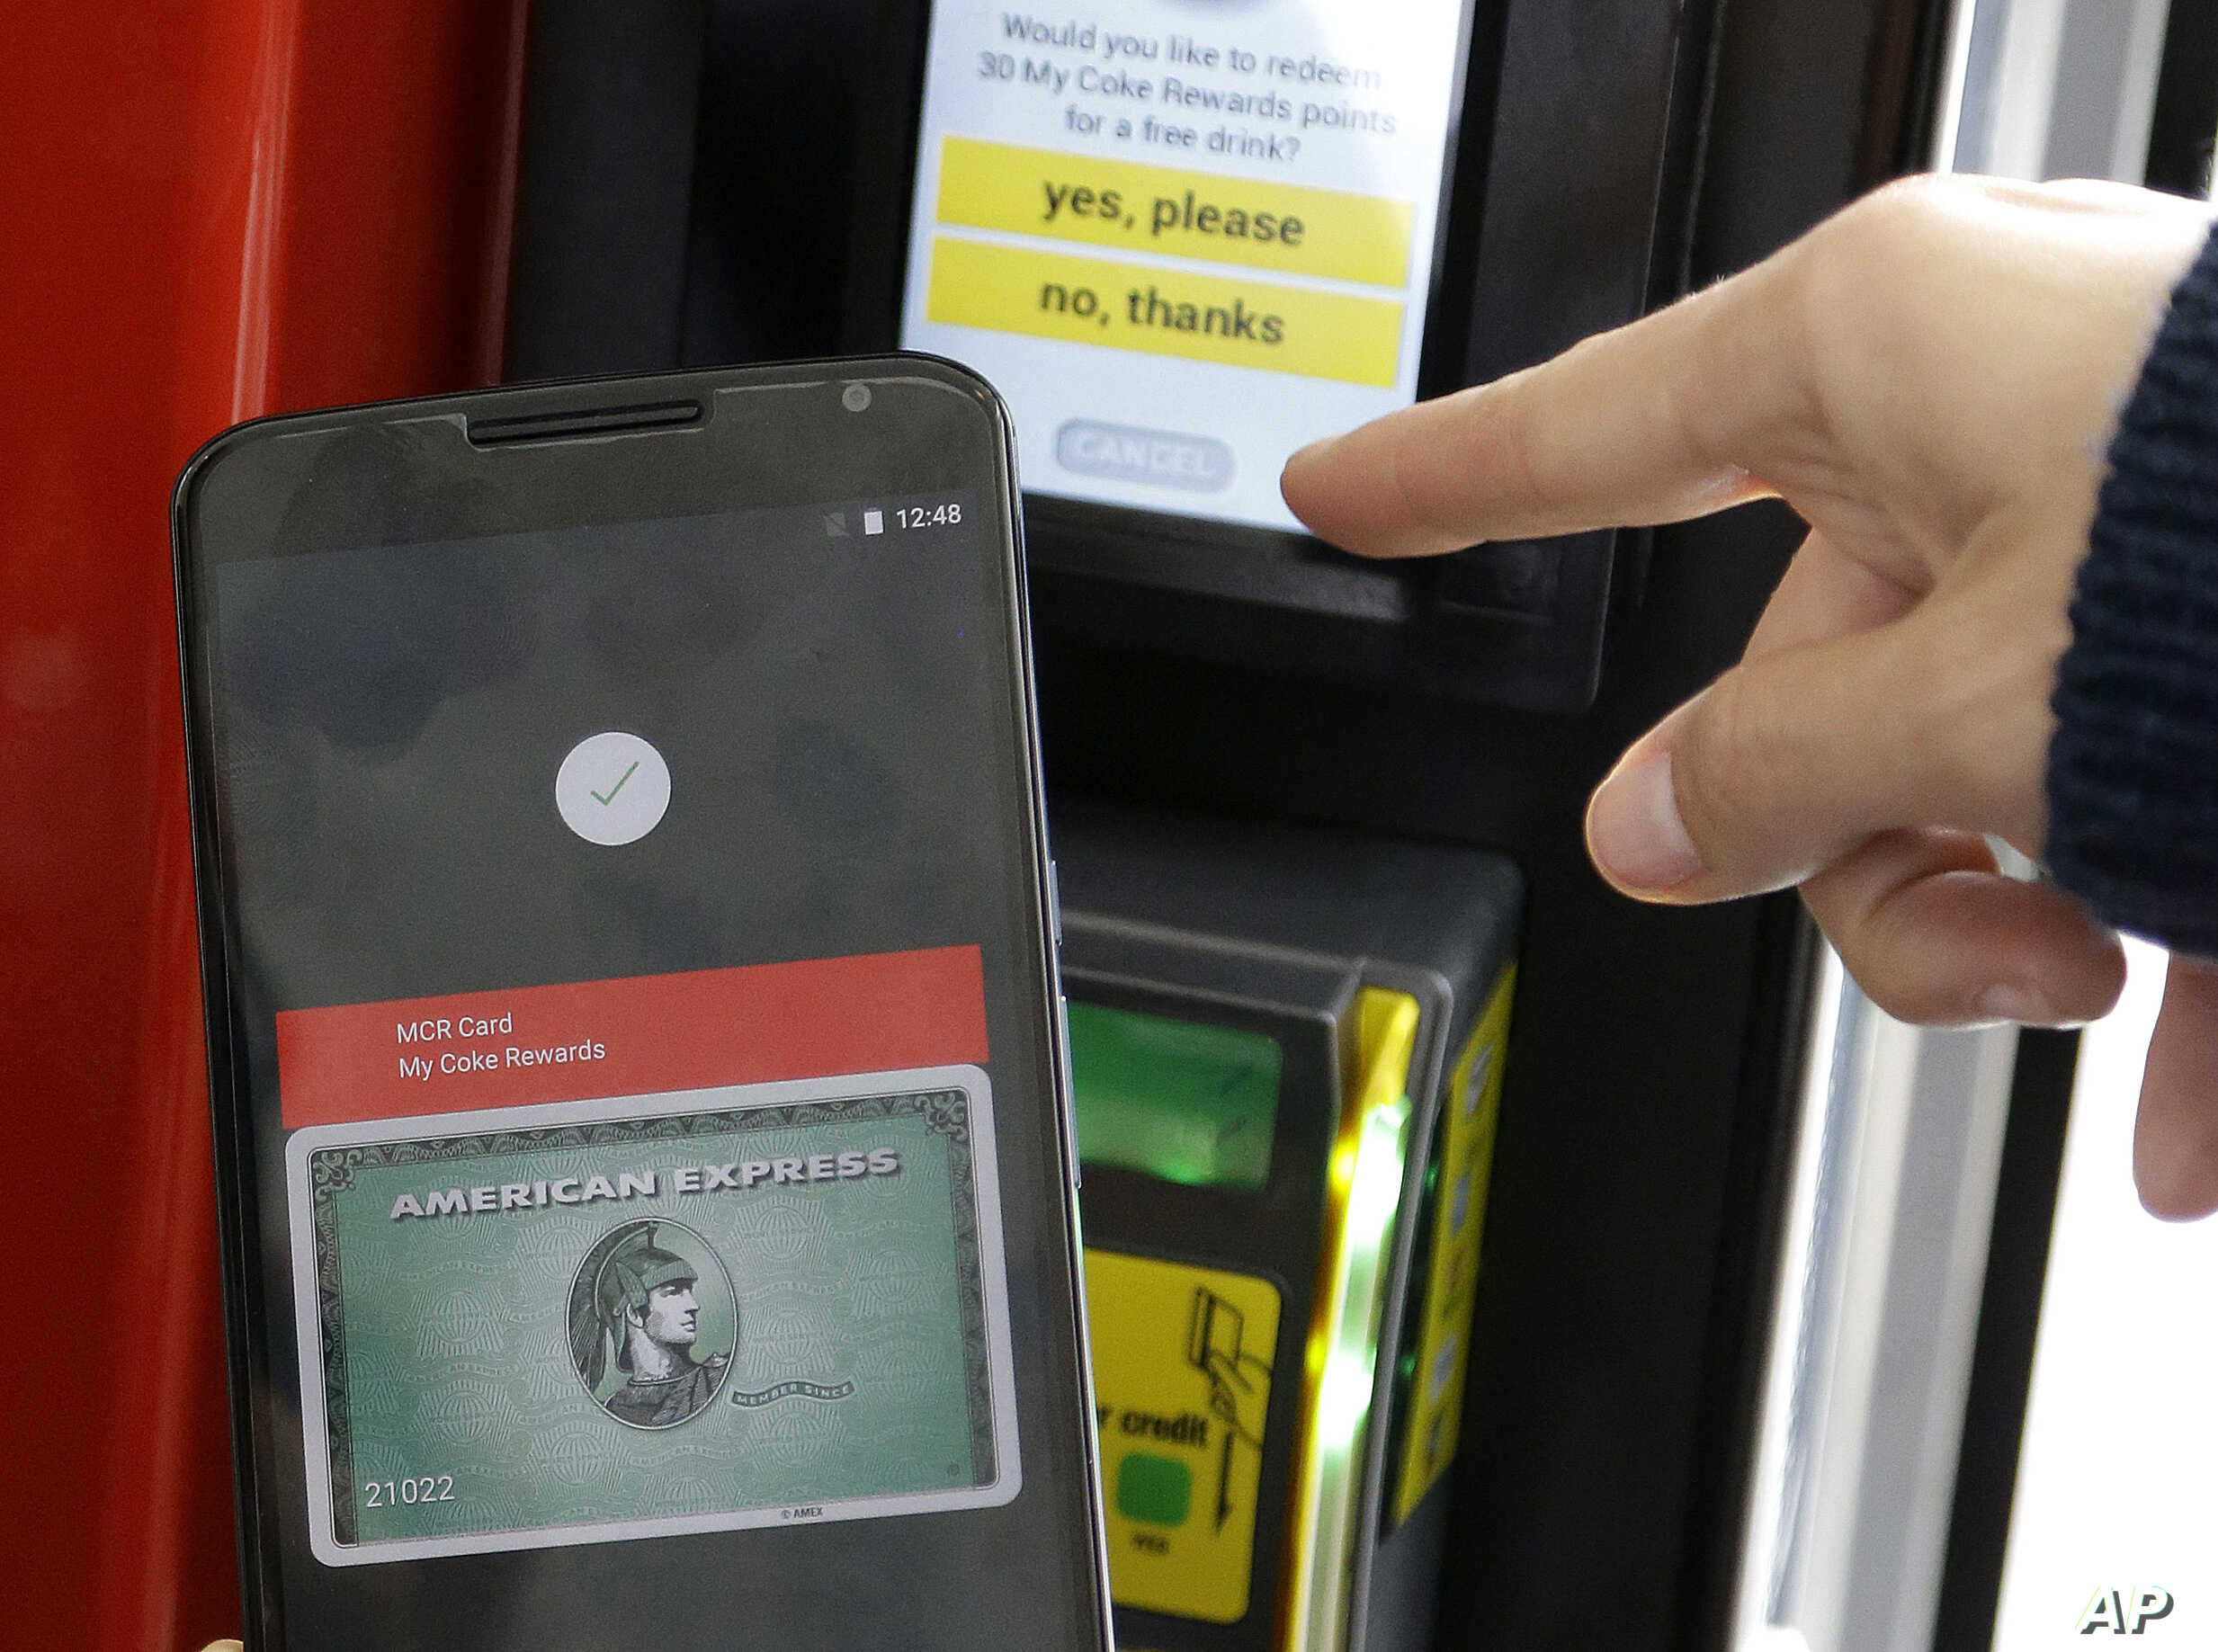 Mobile Wallets Offer Consumers Safety, Other Benefits